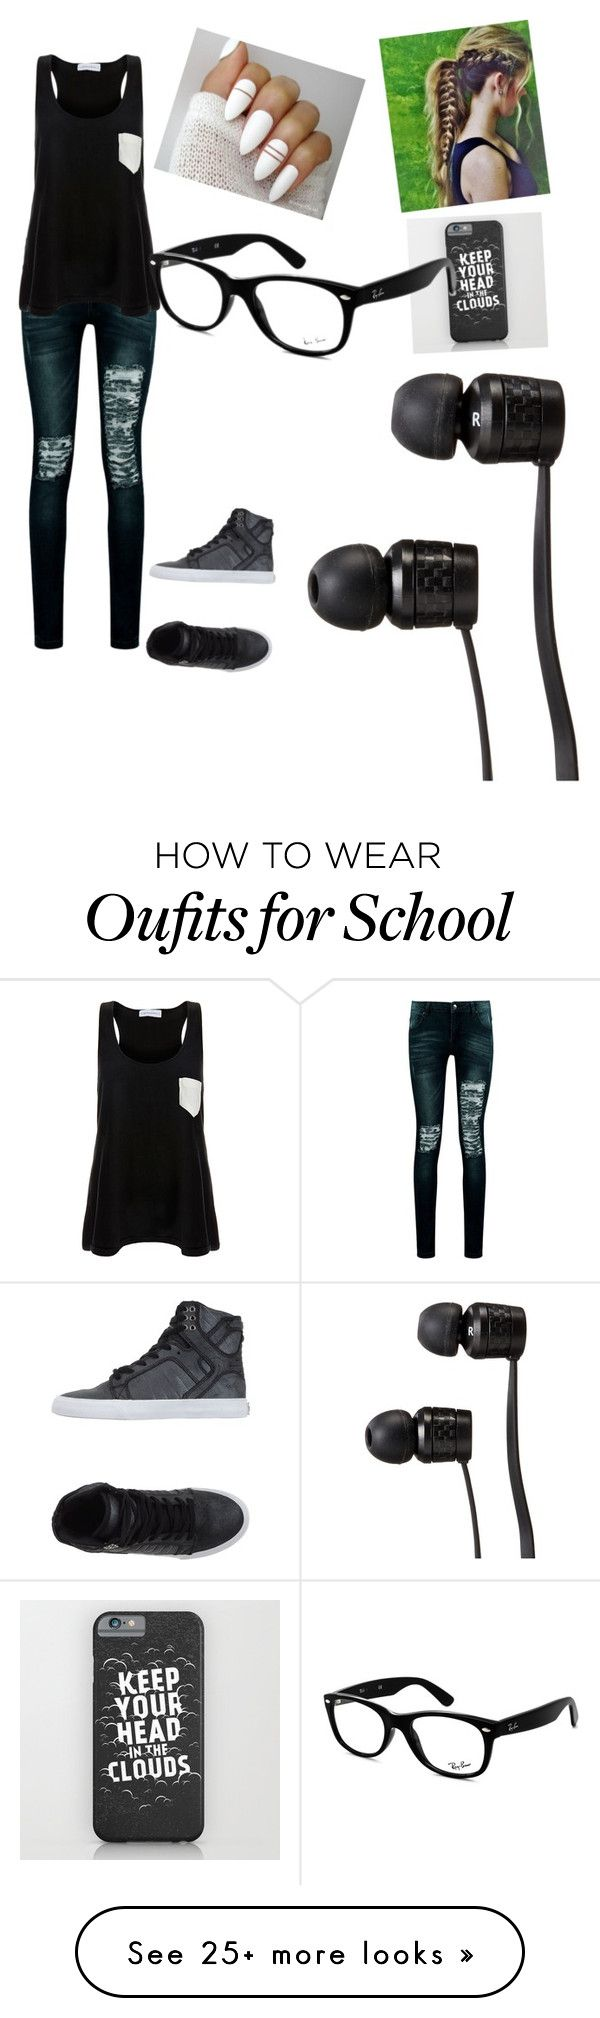 """school"" by batmanforlyfe2001 on Polyvore featuring Boohoo, Solid & Striped, Supra, Ray-Ban and Vans"